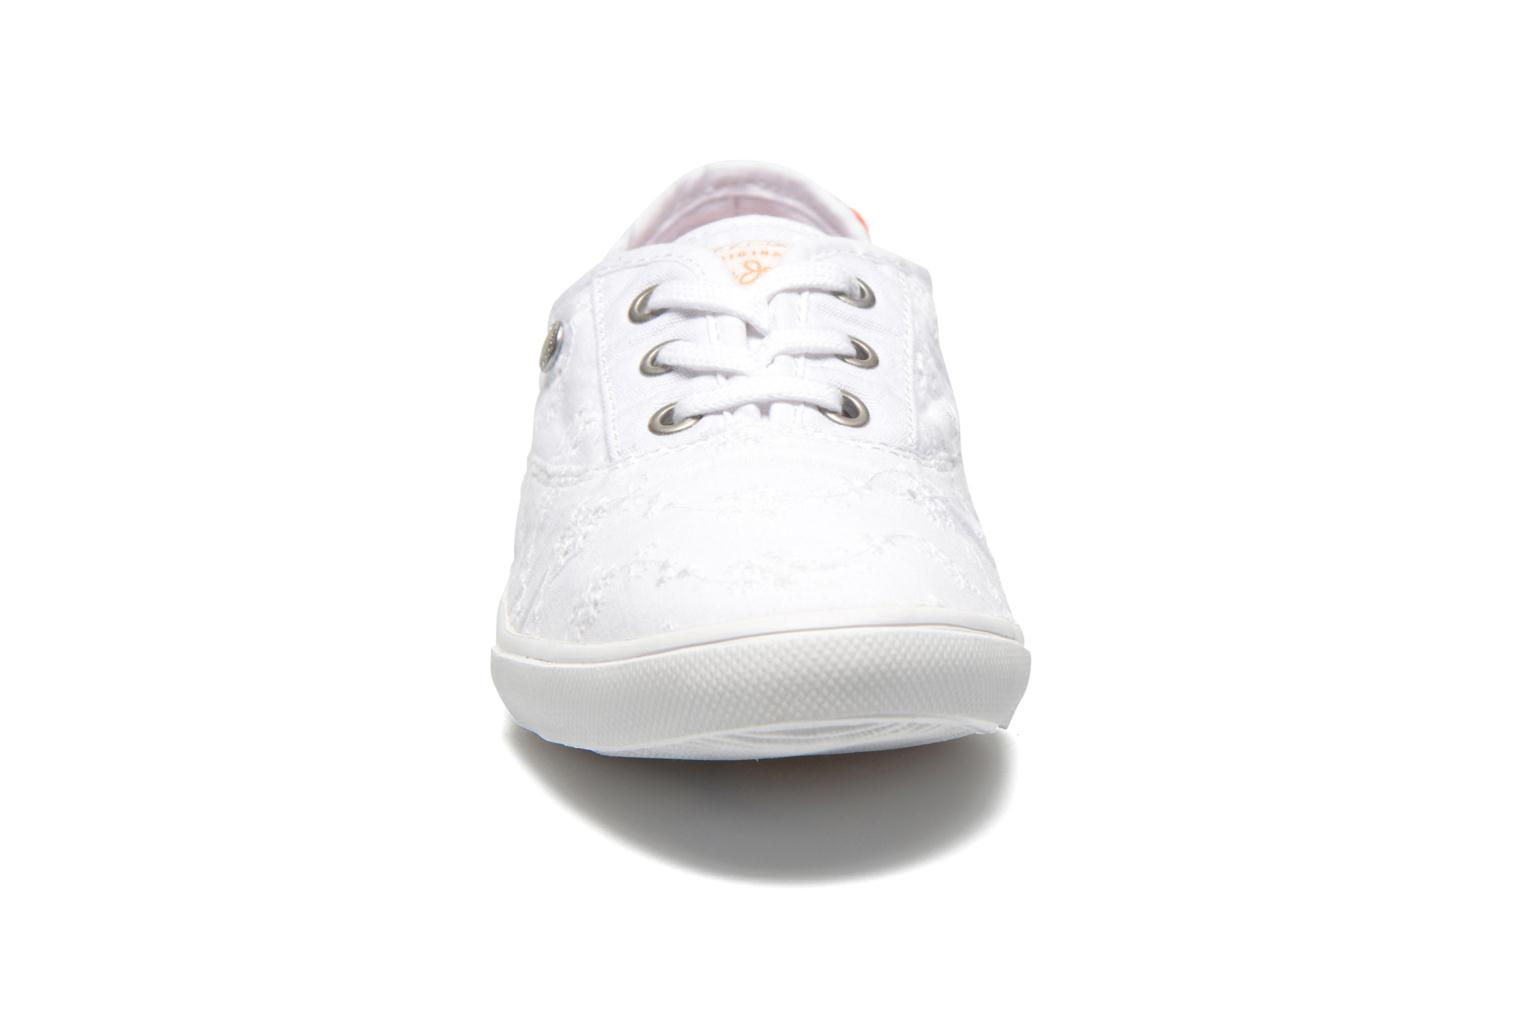 Baskets Pepe jeans Soho Embroidery Blanc vue portées chaussures